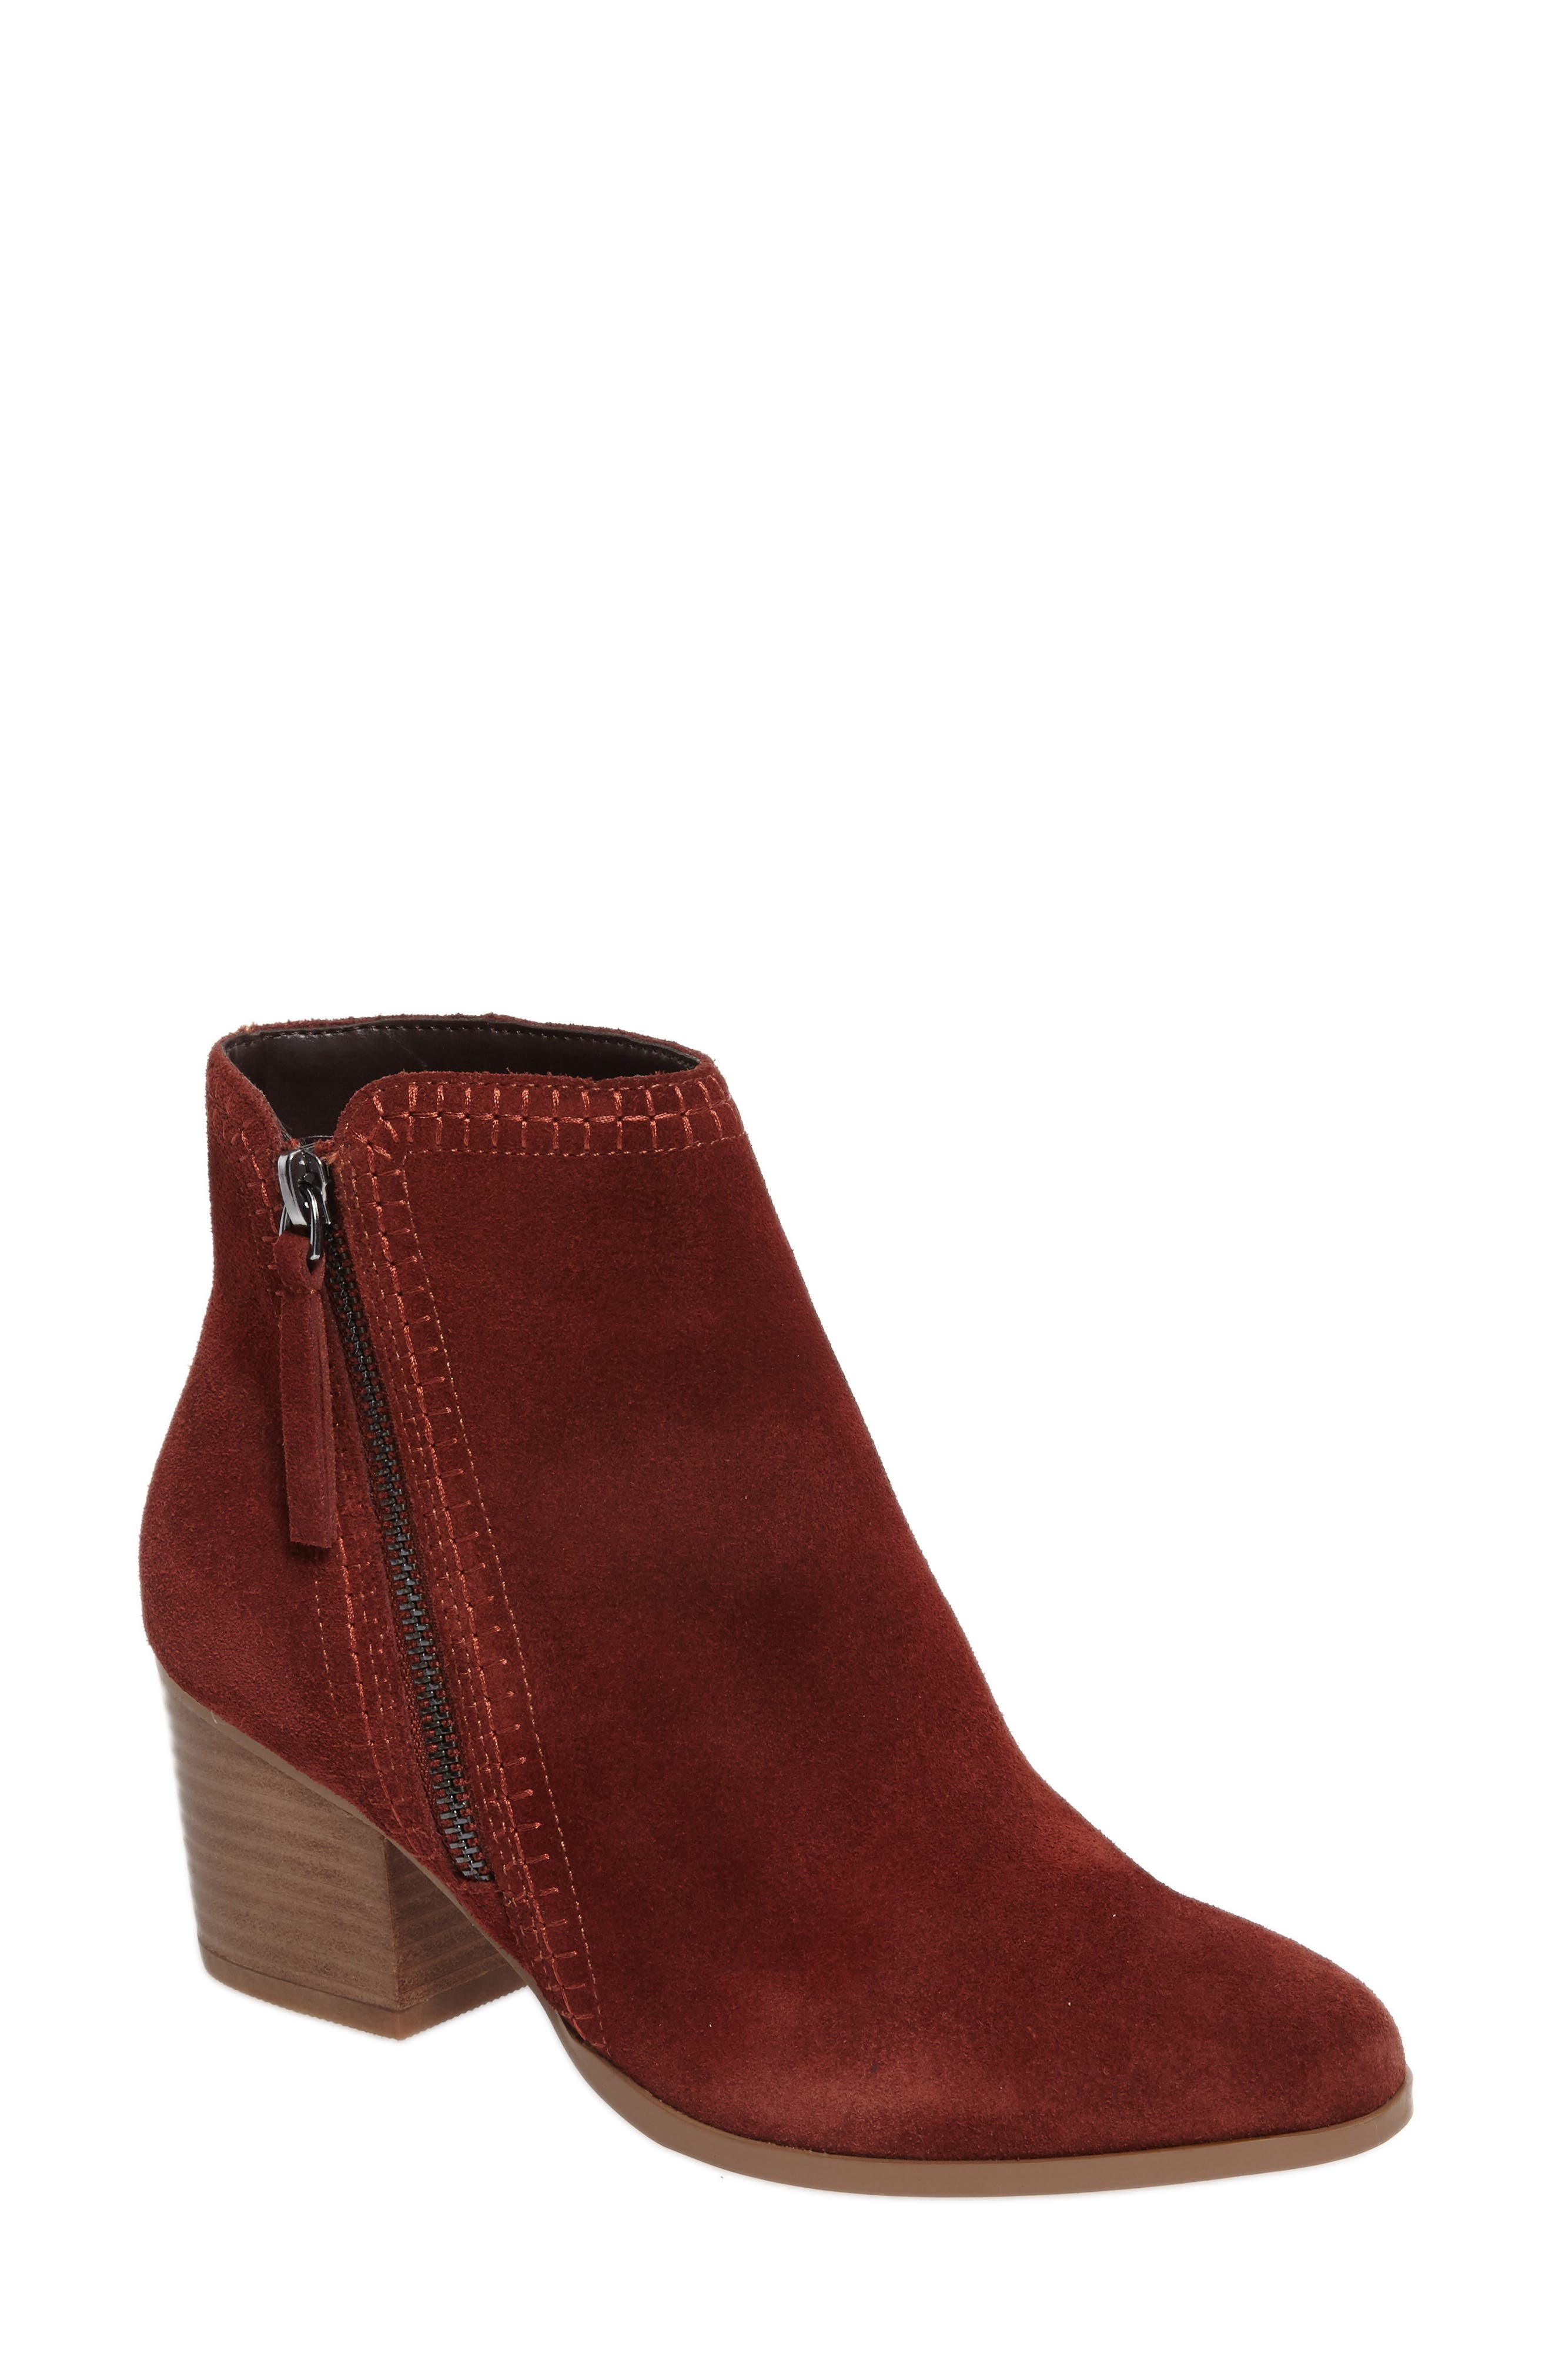 Alternate Image 1 Selected - Sole Society Corinna Bootie (Women)